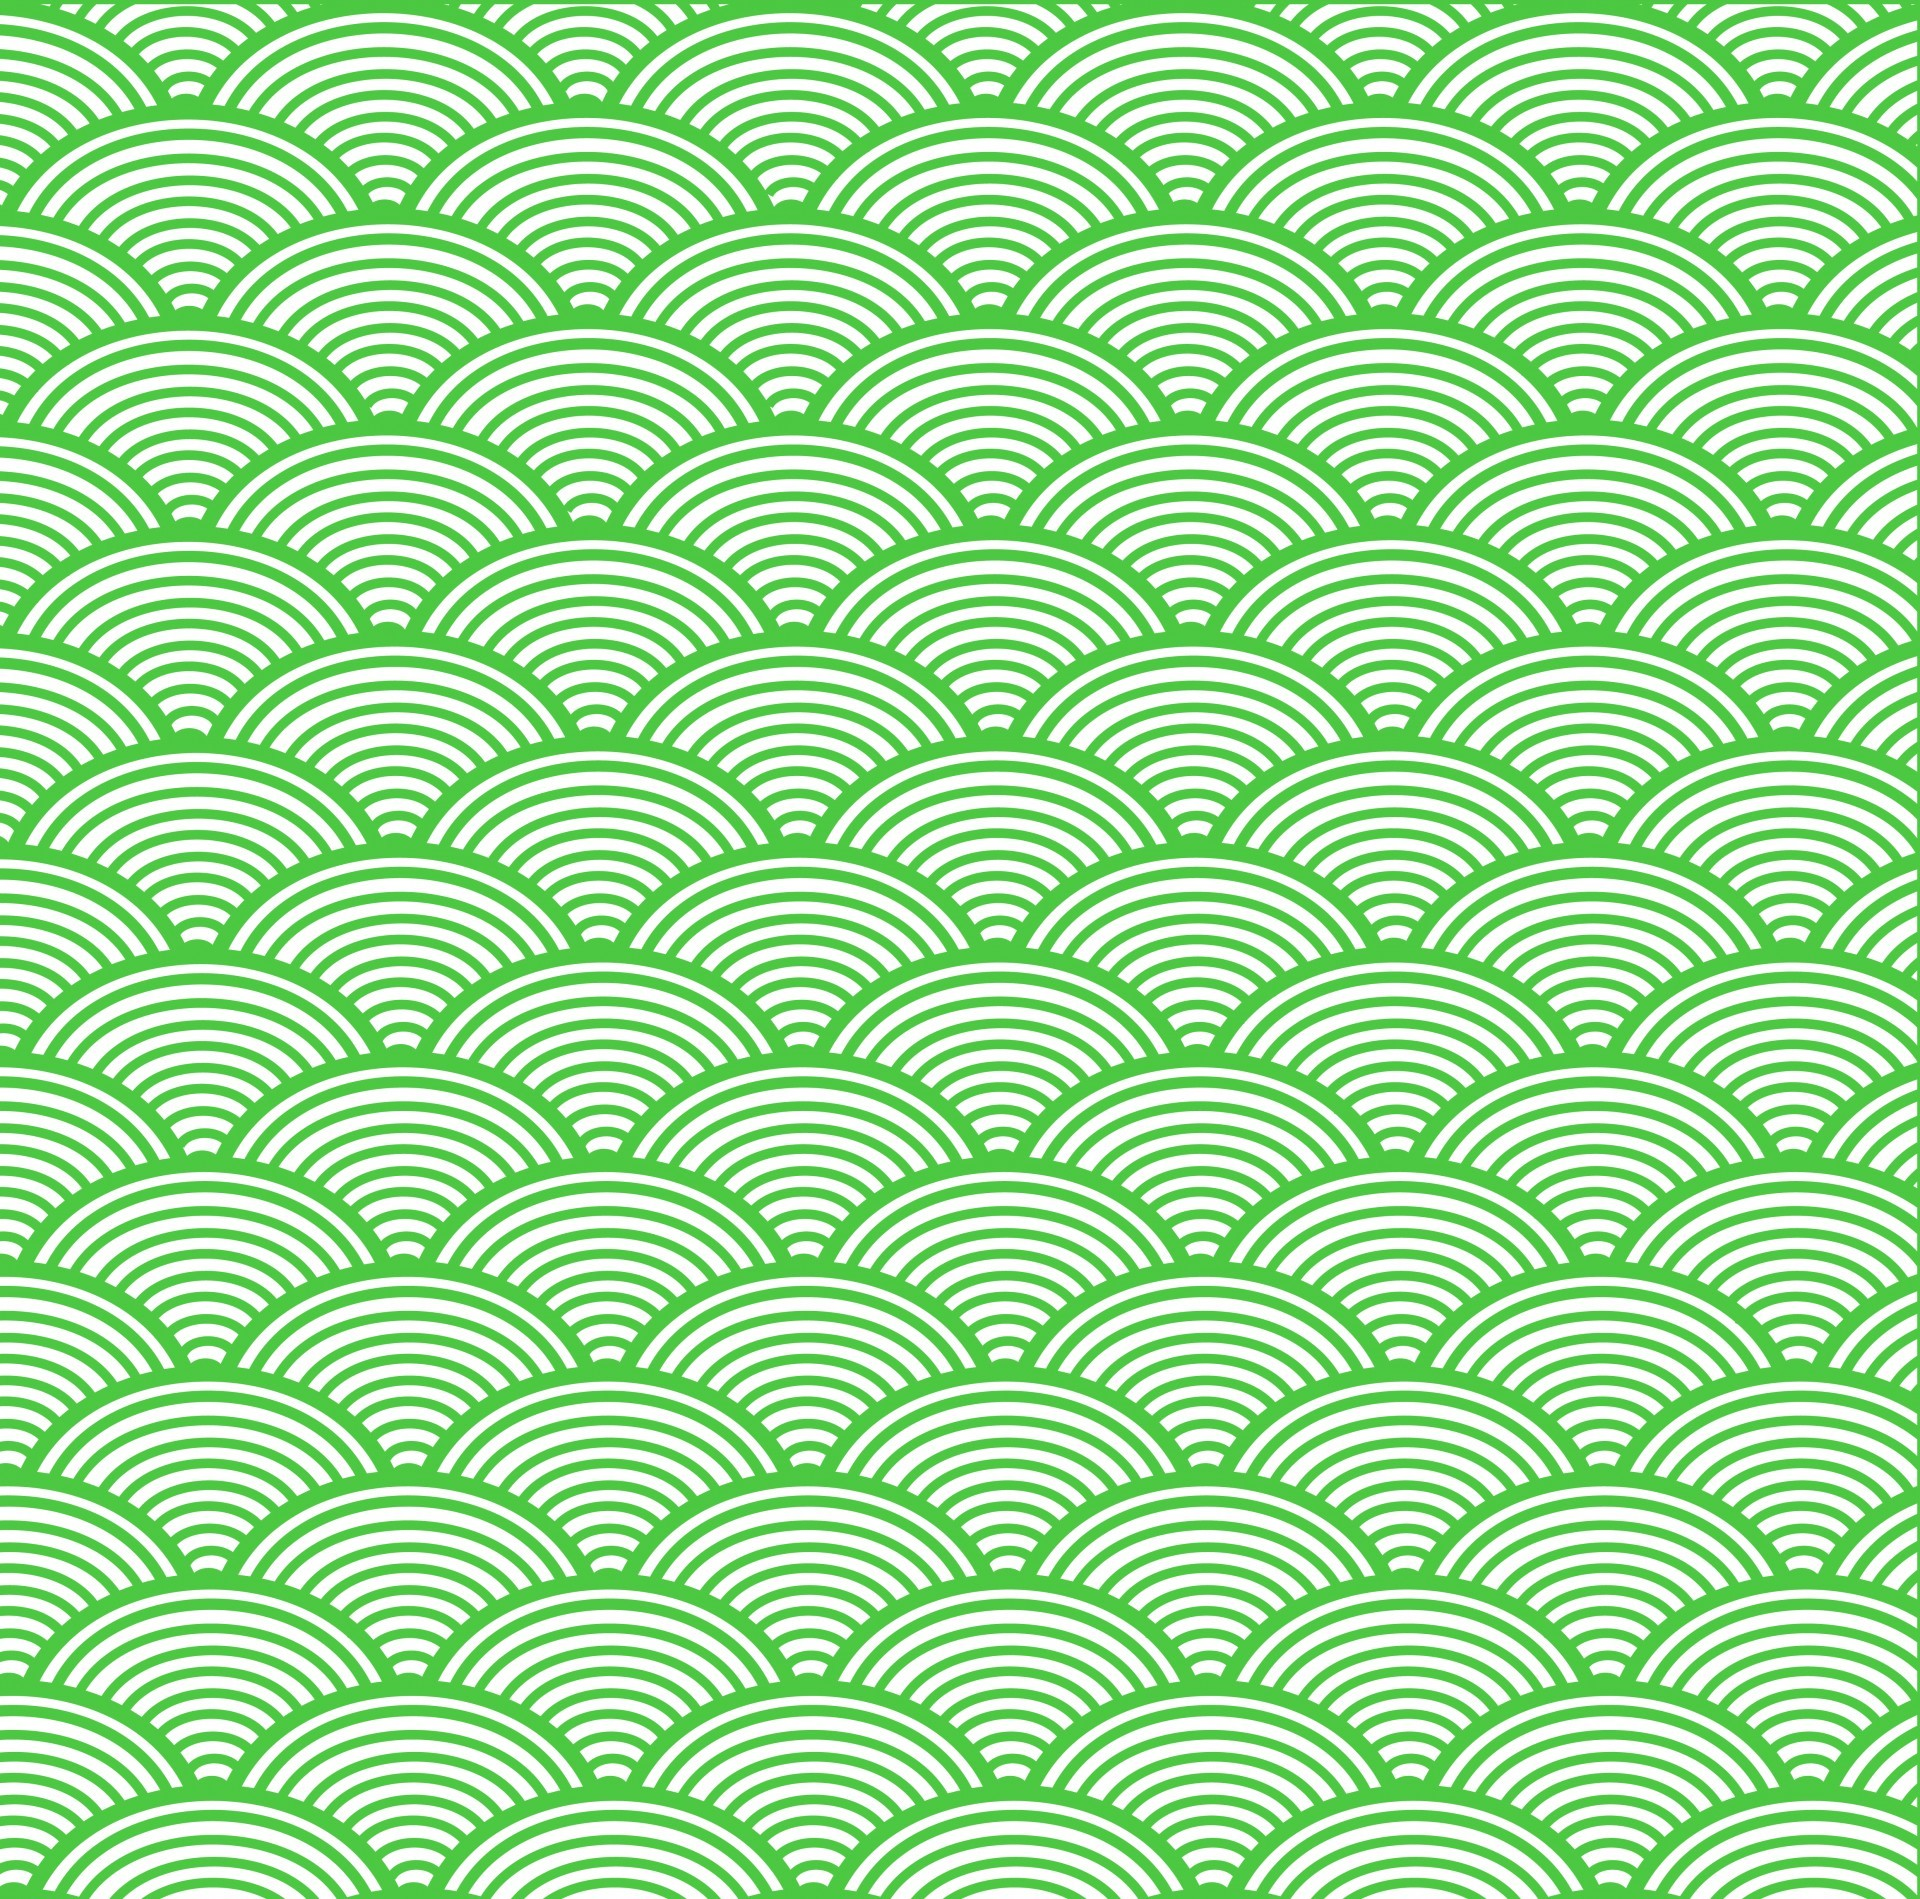 Res: 1920x1899, Japanese Wave Wallpaper Green